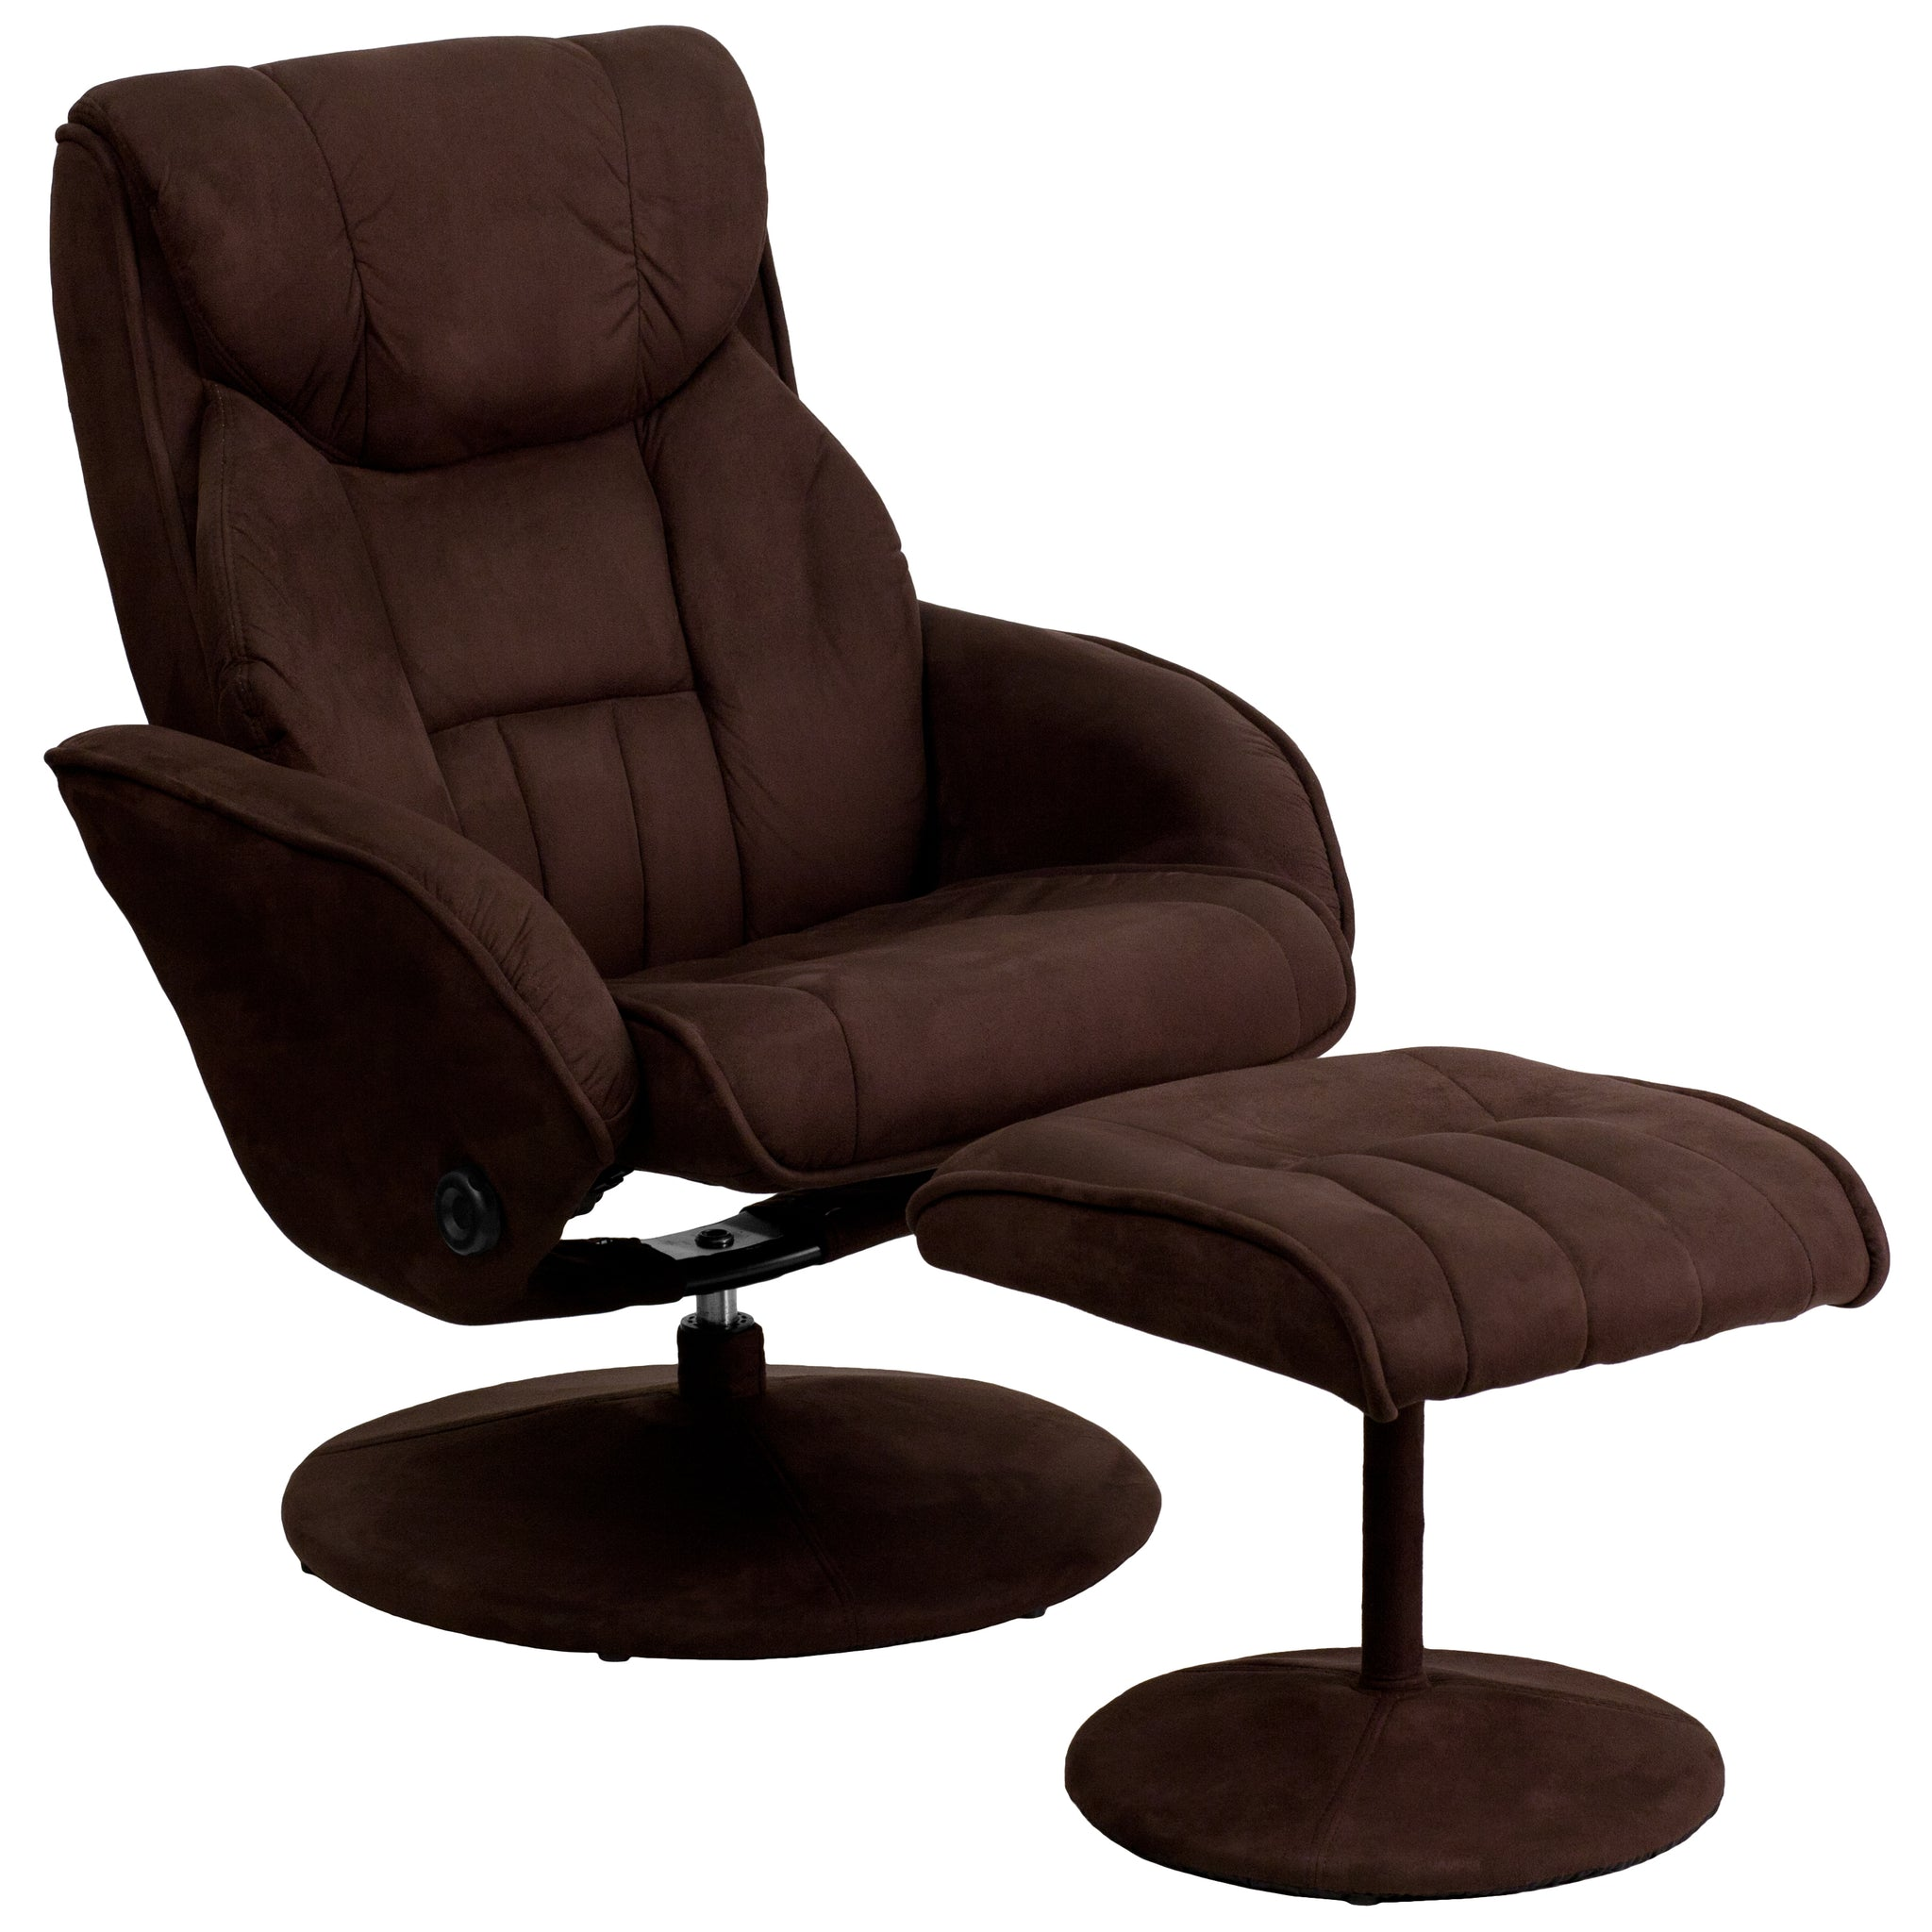 Contemporary Microfiber Recliner and Ottoman with Circular Microfiber Wrapped Base: Brown